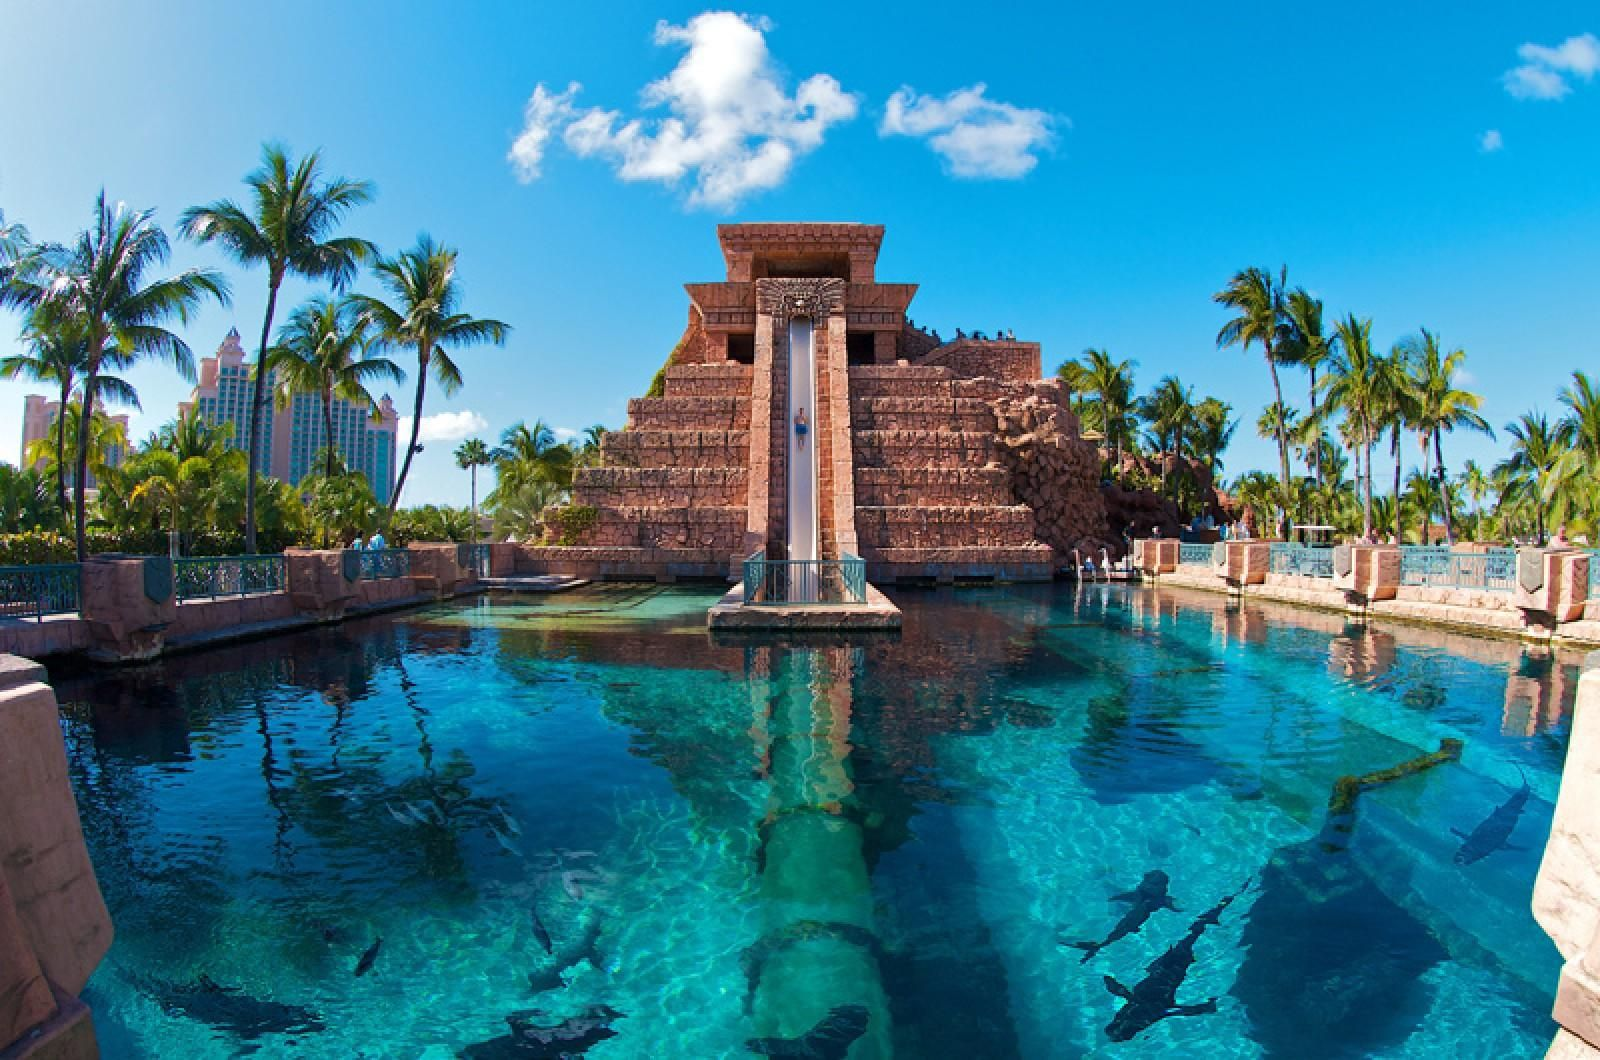 The Mayan Slide Goes Into Shark Infested Waters At The Atlantis Hotel,  Bahamas.